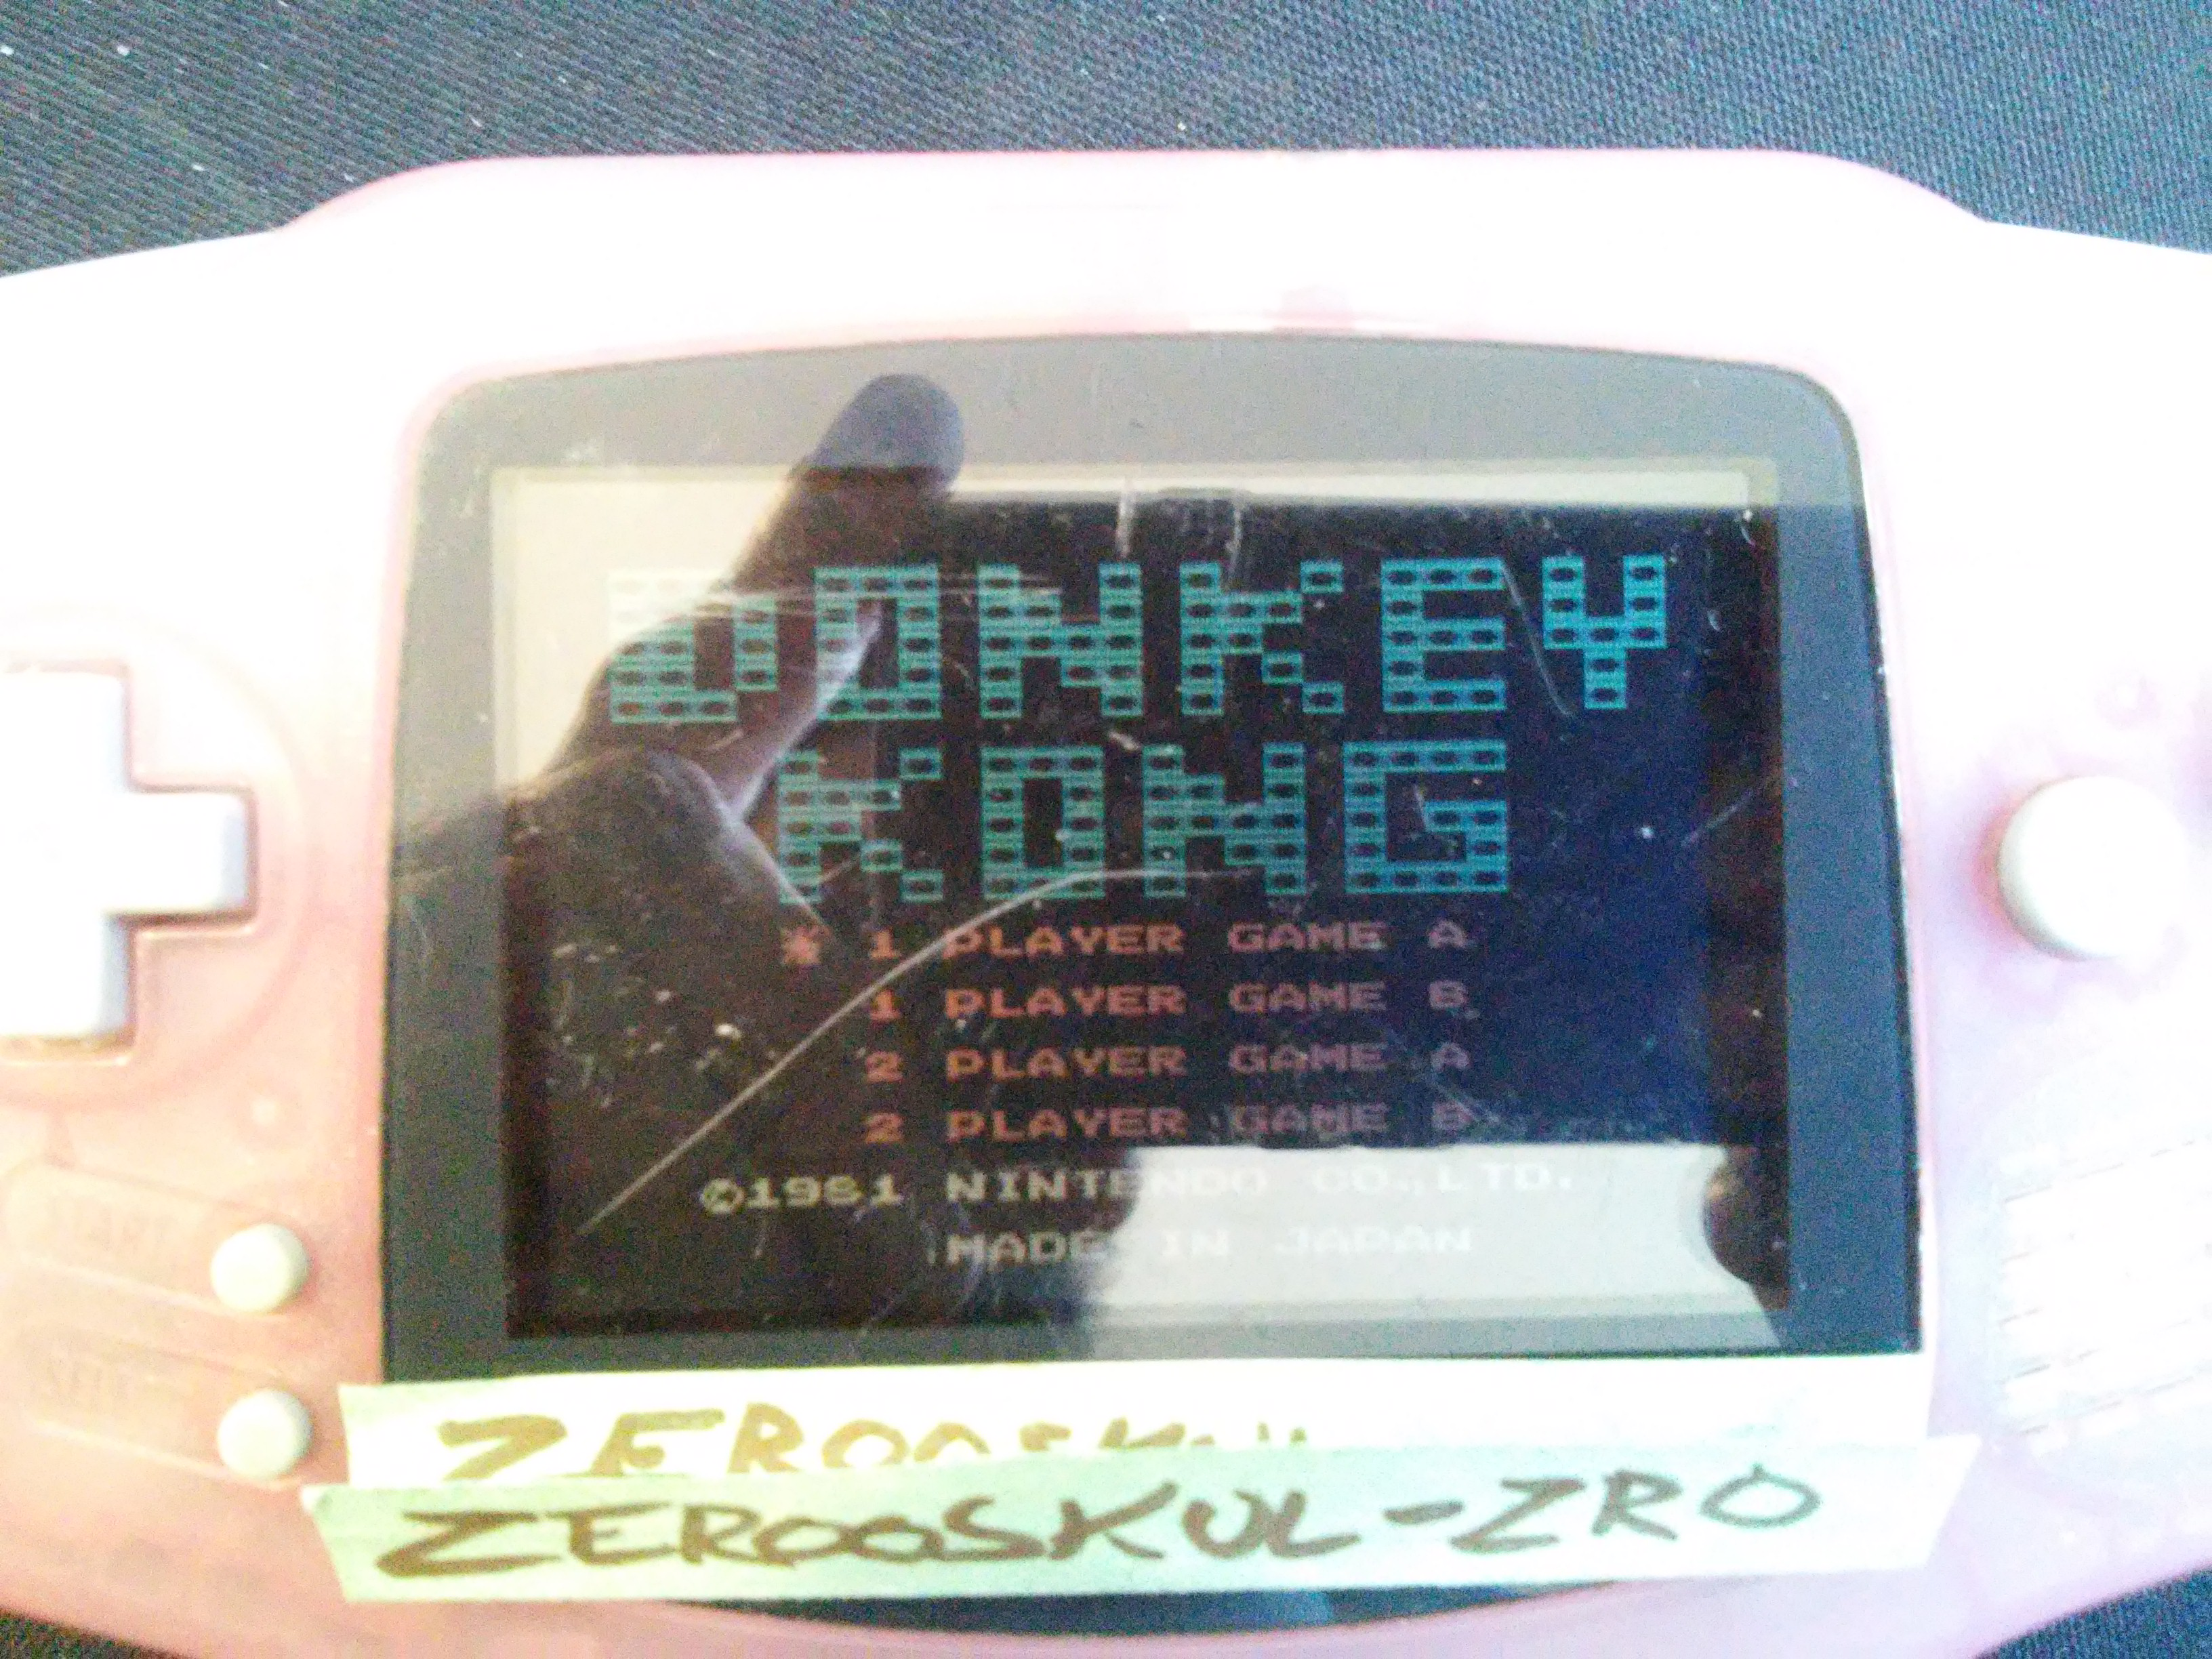 Classic NES Series: Donkey Kong 208,400 points